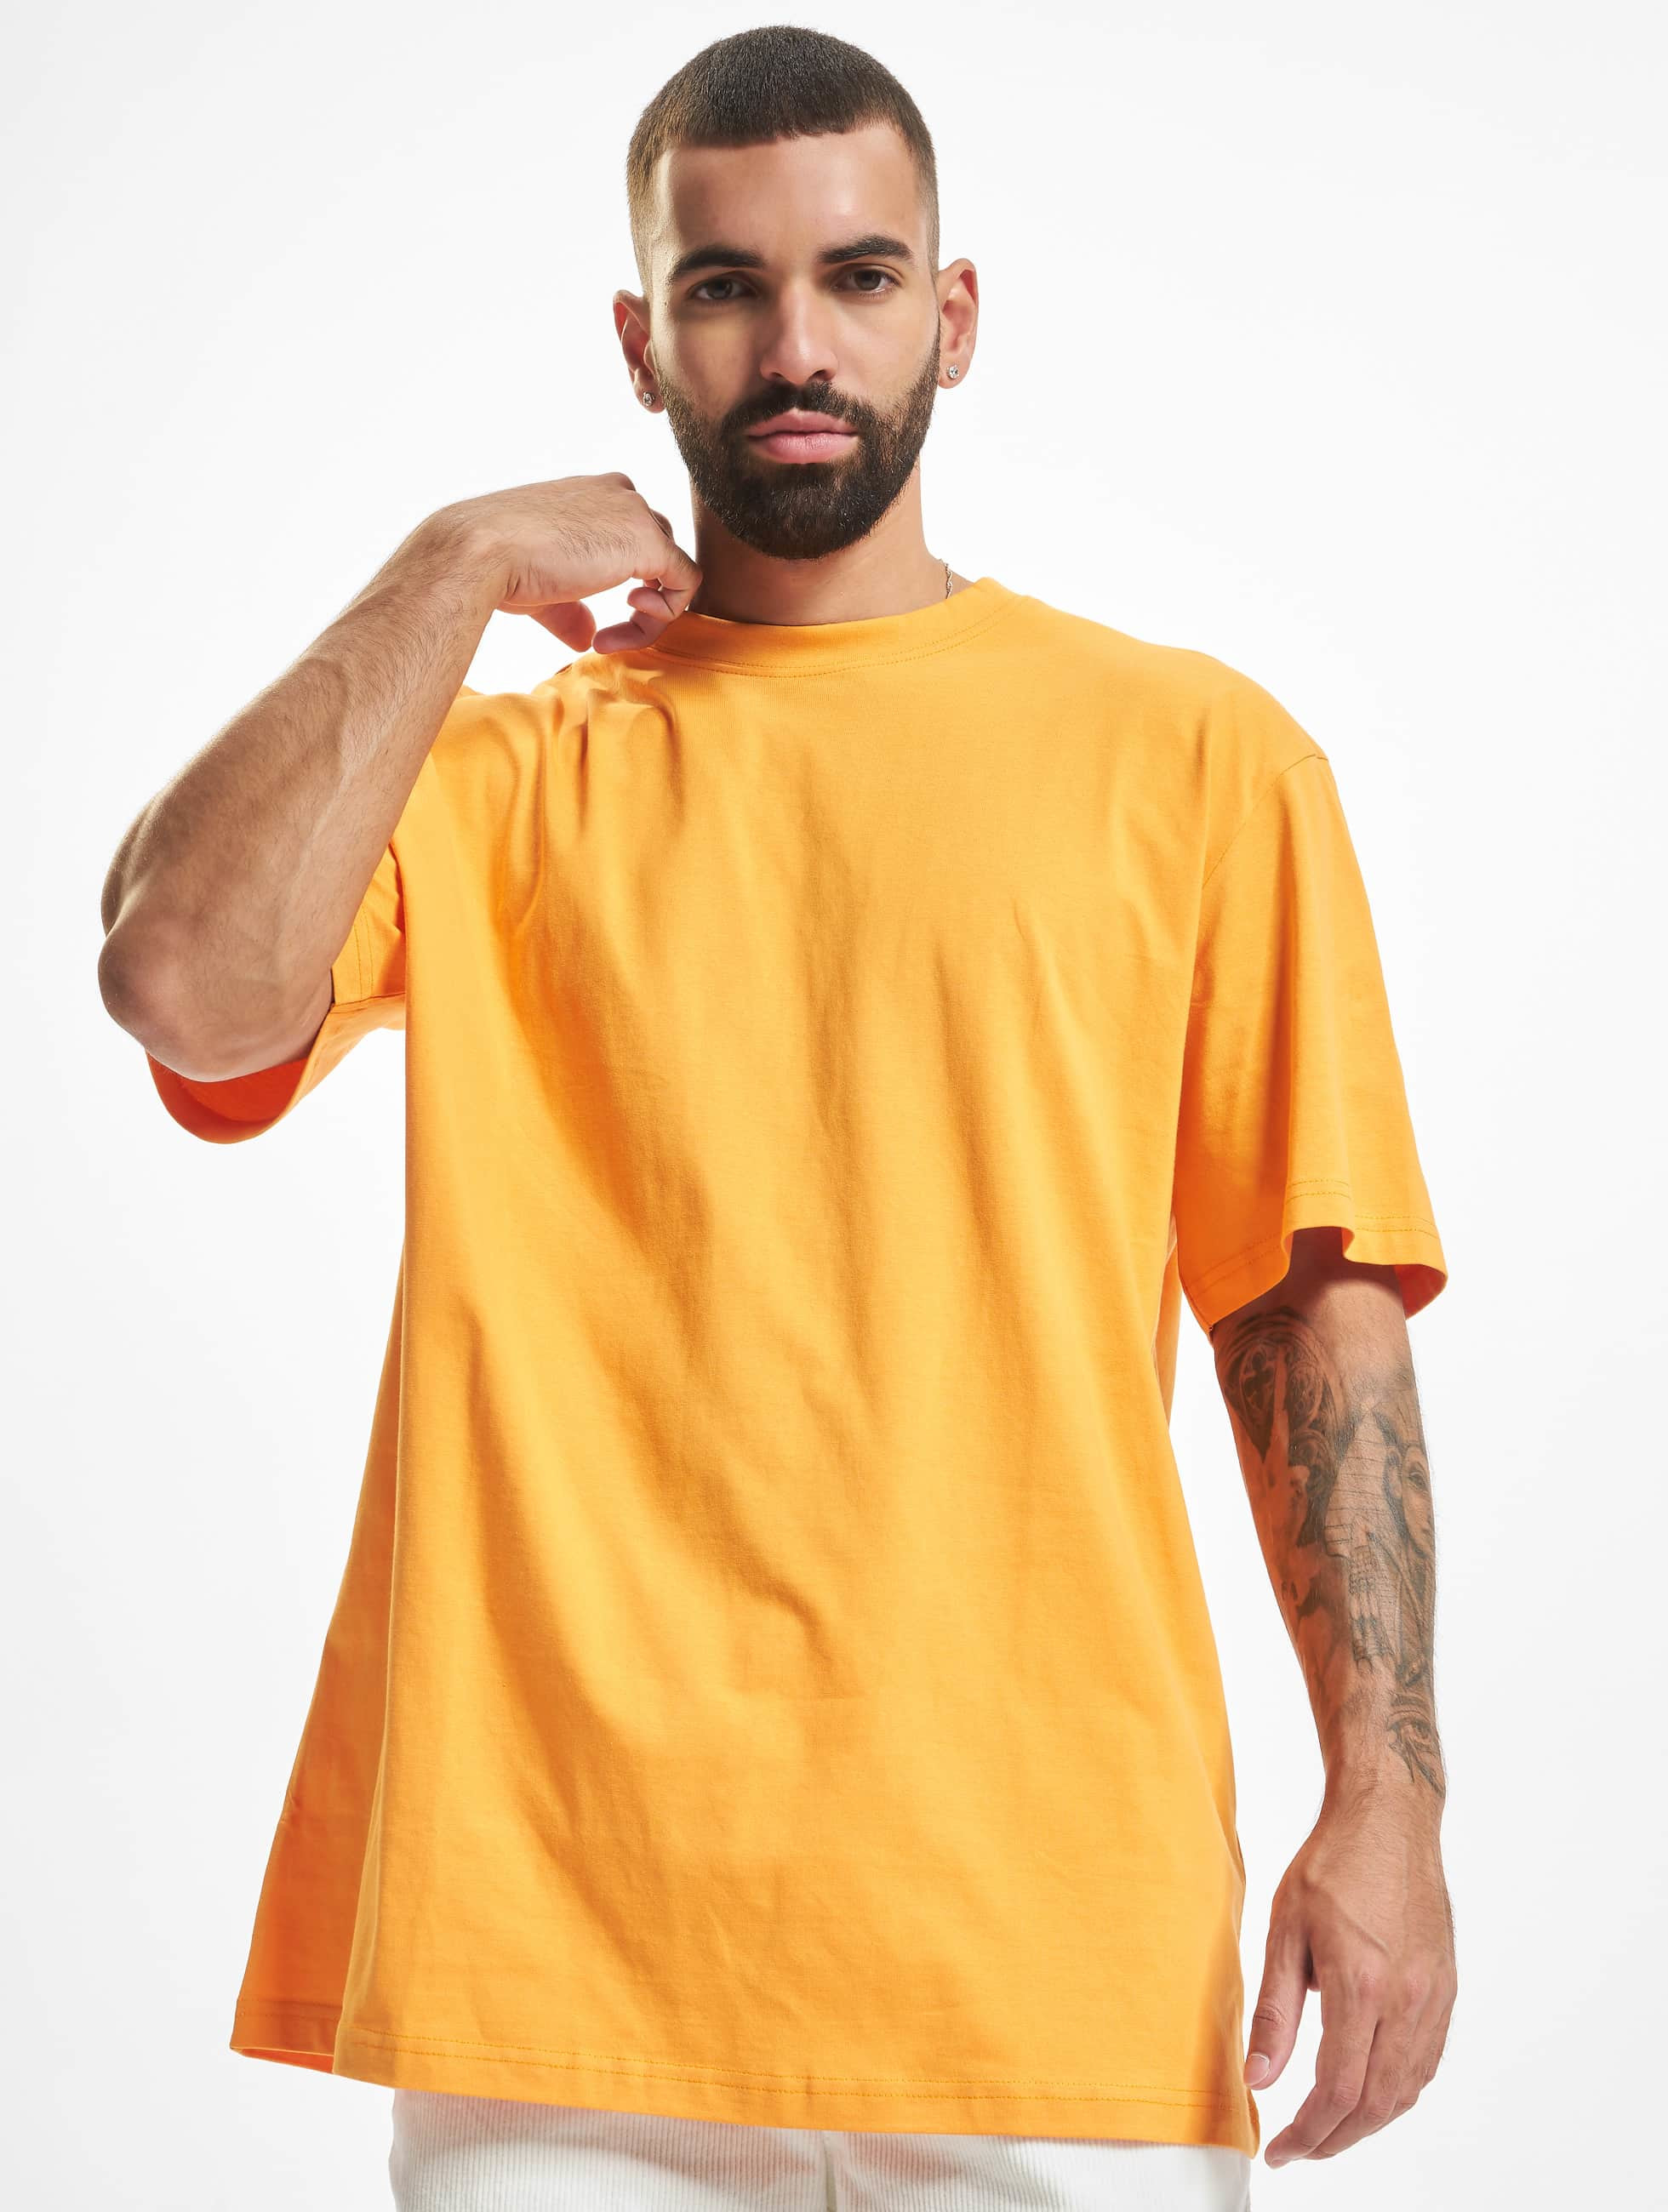 Urban Classics Tall Tees Tall Tee orange